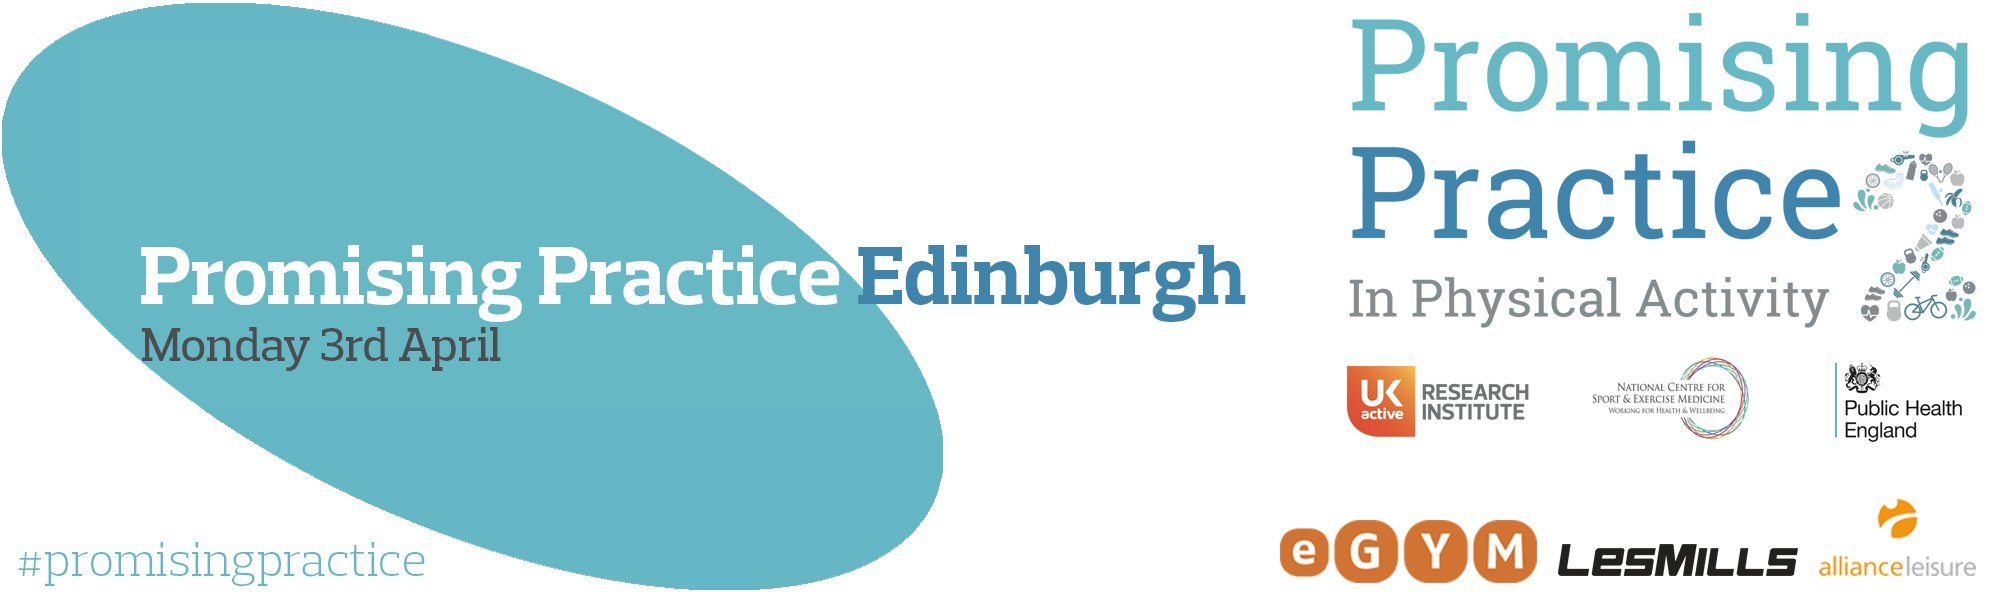 Meet our experts in #Edinburgh for #PromisingPractice @CyclingSurgeon @Tanni_GT @EAMacahp @NHS_HS @ScotStuSport https://t.co/nnhw6U3hJM https://t.co/5dOmAXXAJA